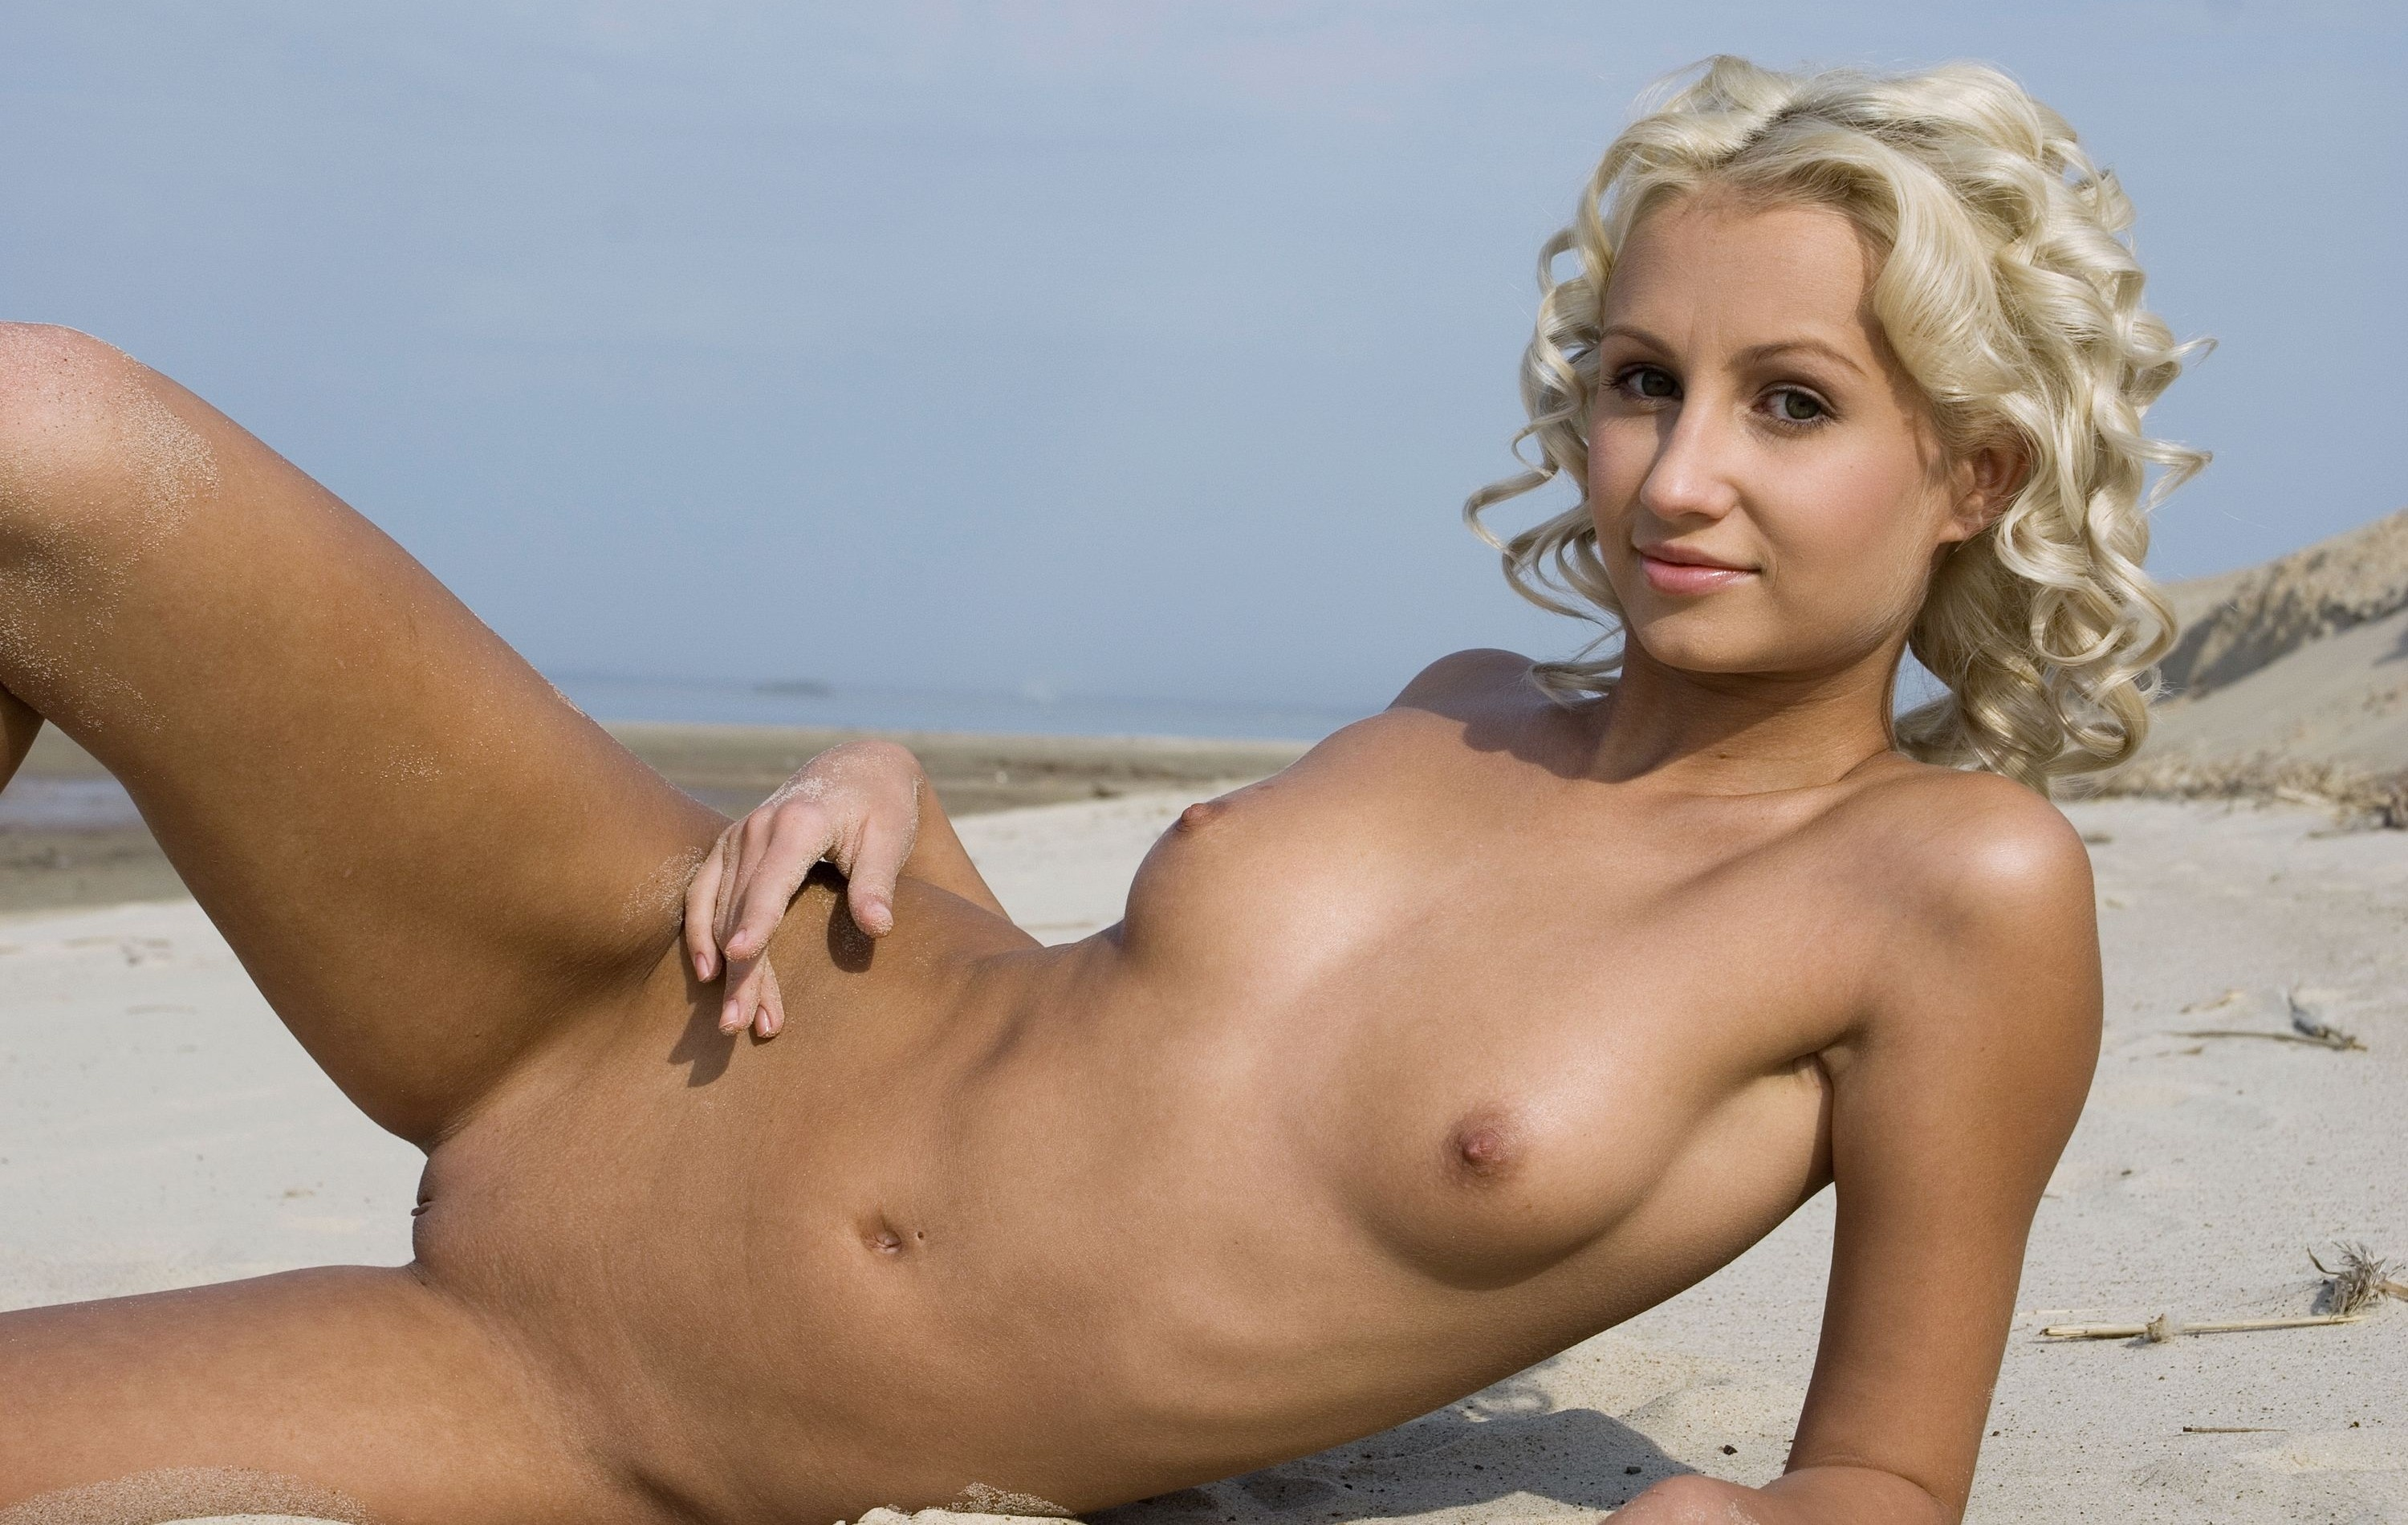 Wallpaper Anju, Blonde, Beach, Sand, Nude, Naked, Boobs, Tits, Model -1301